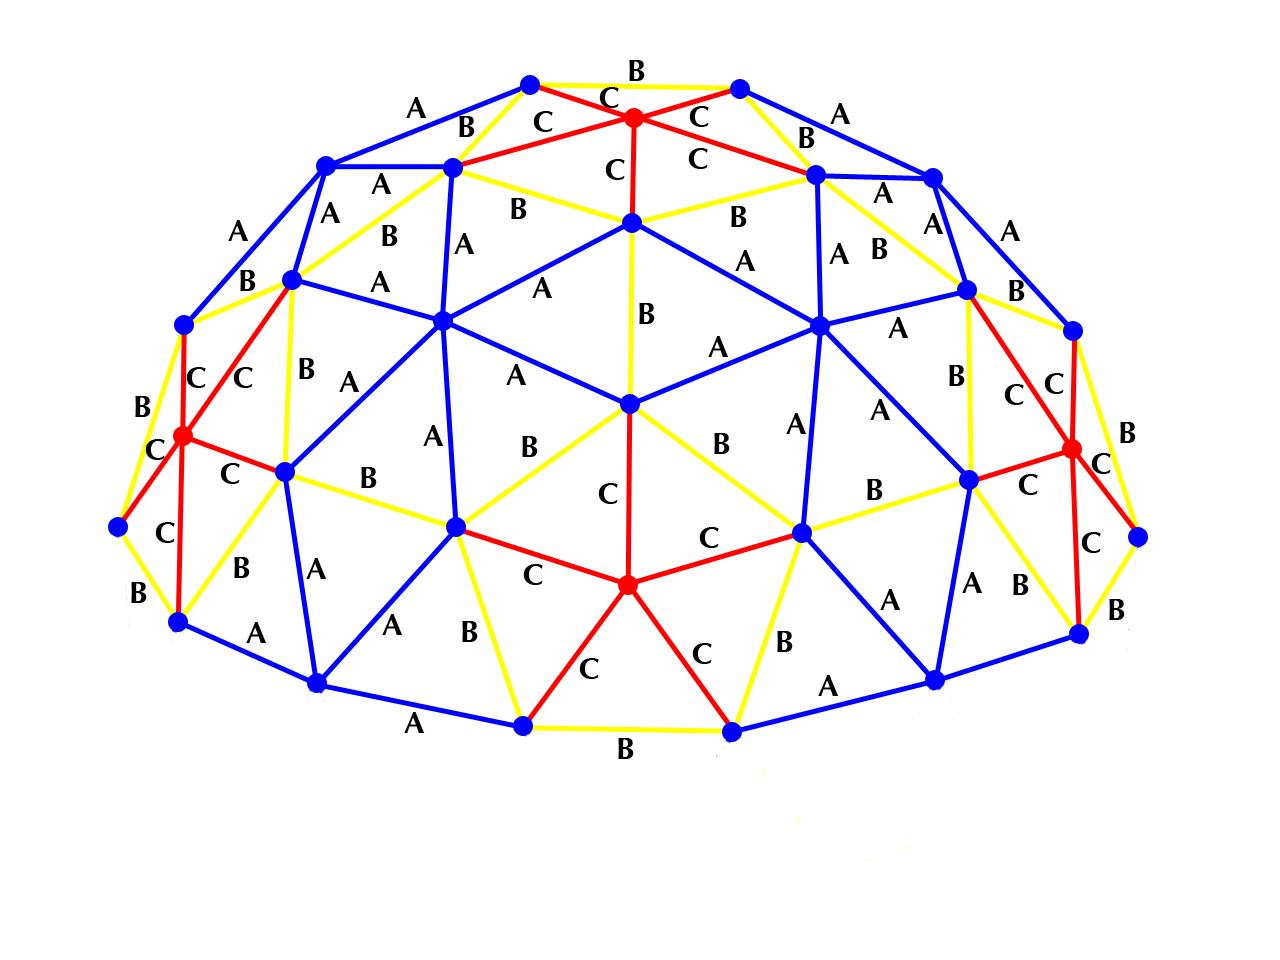 3v 3/8 Geodesic Dome Calculator